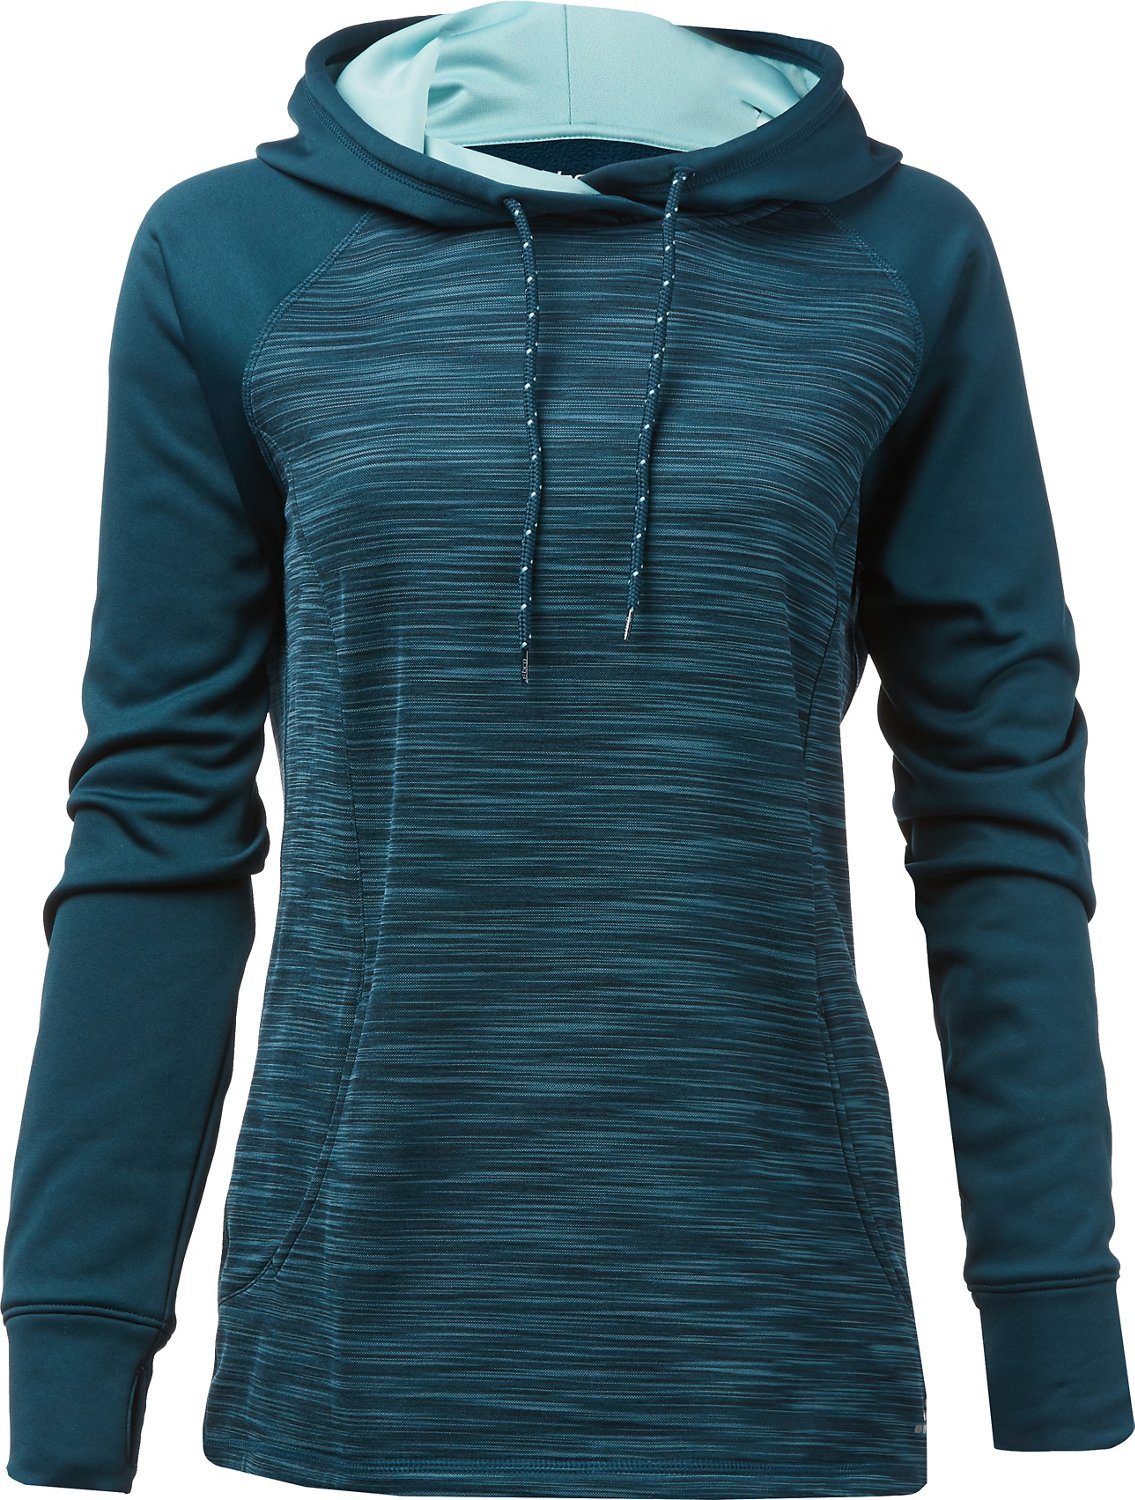 bd84a861d997 Display product reviews for BCG Women s Melange Pullover Fleece